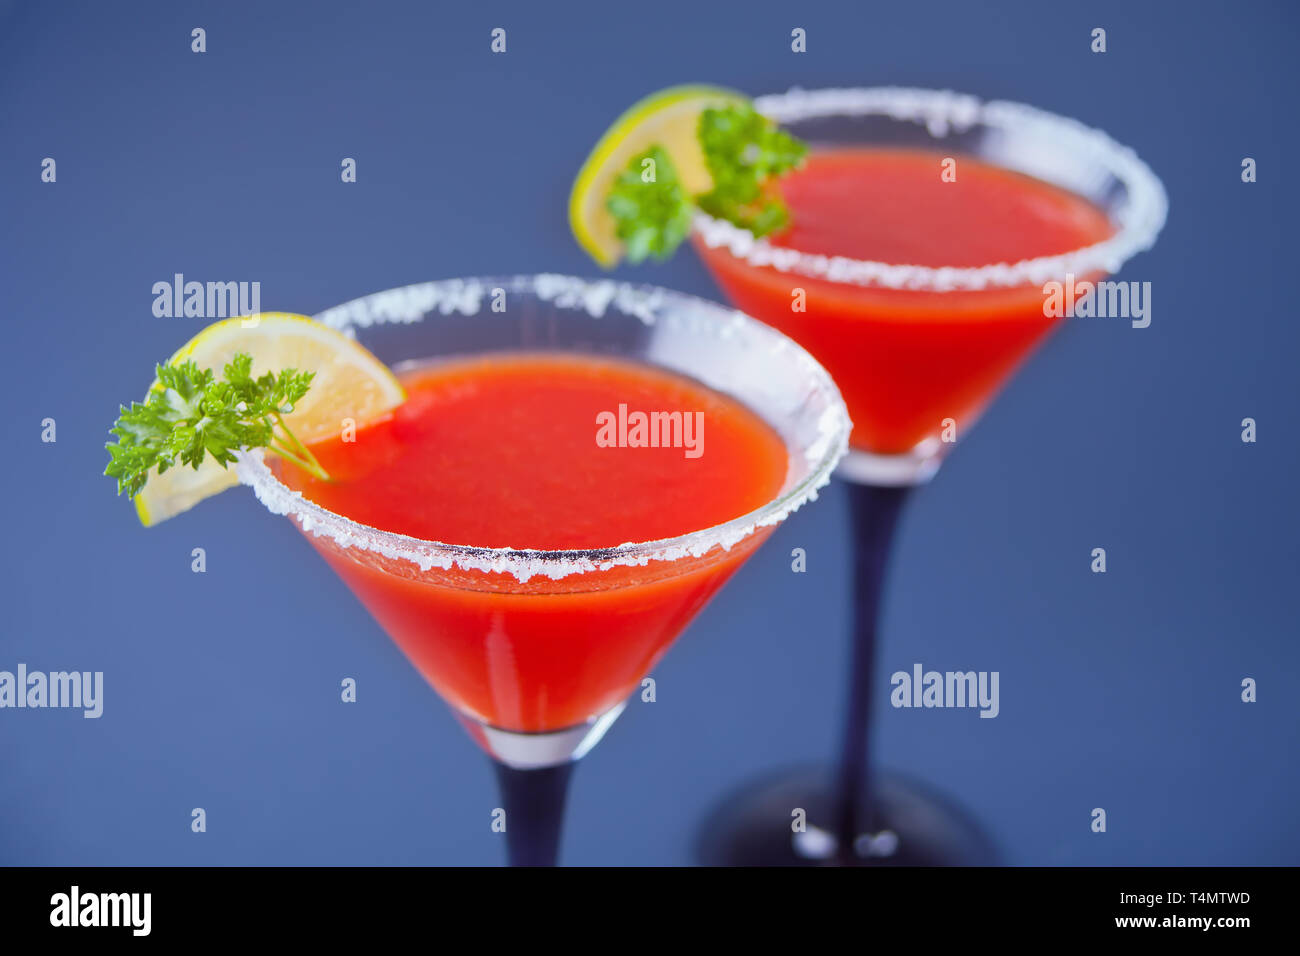 Bloody Mary Cocktail In Glasses With Lime Tomato Bloody Mary Spicy Drink On Blue Background Stock Photo Alamy